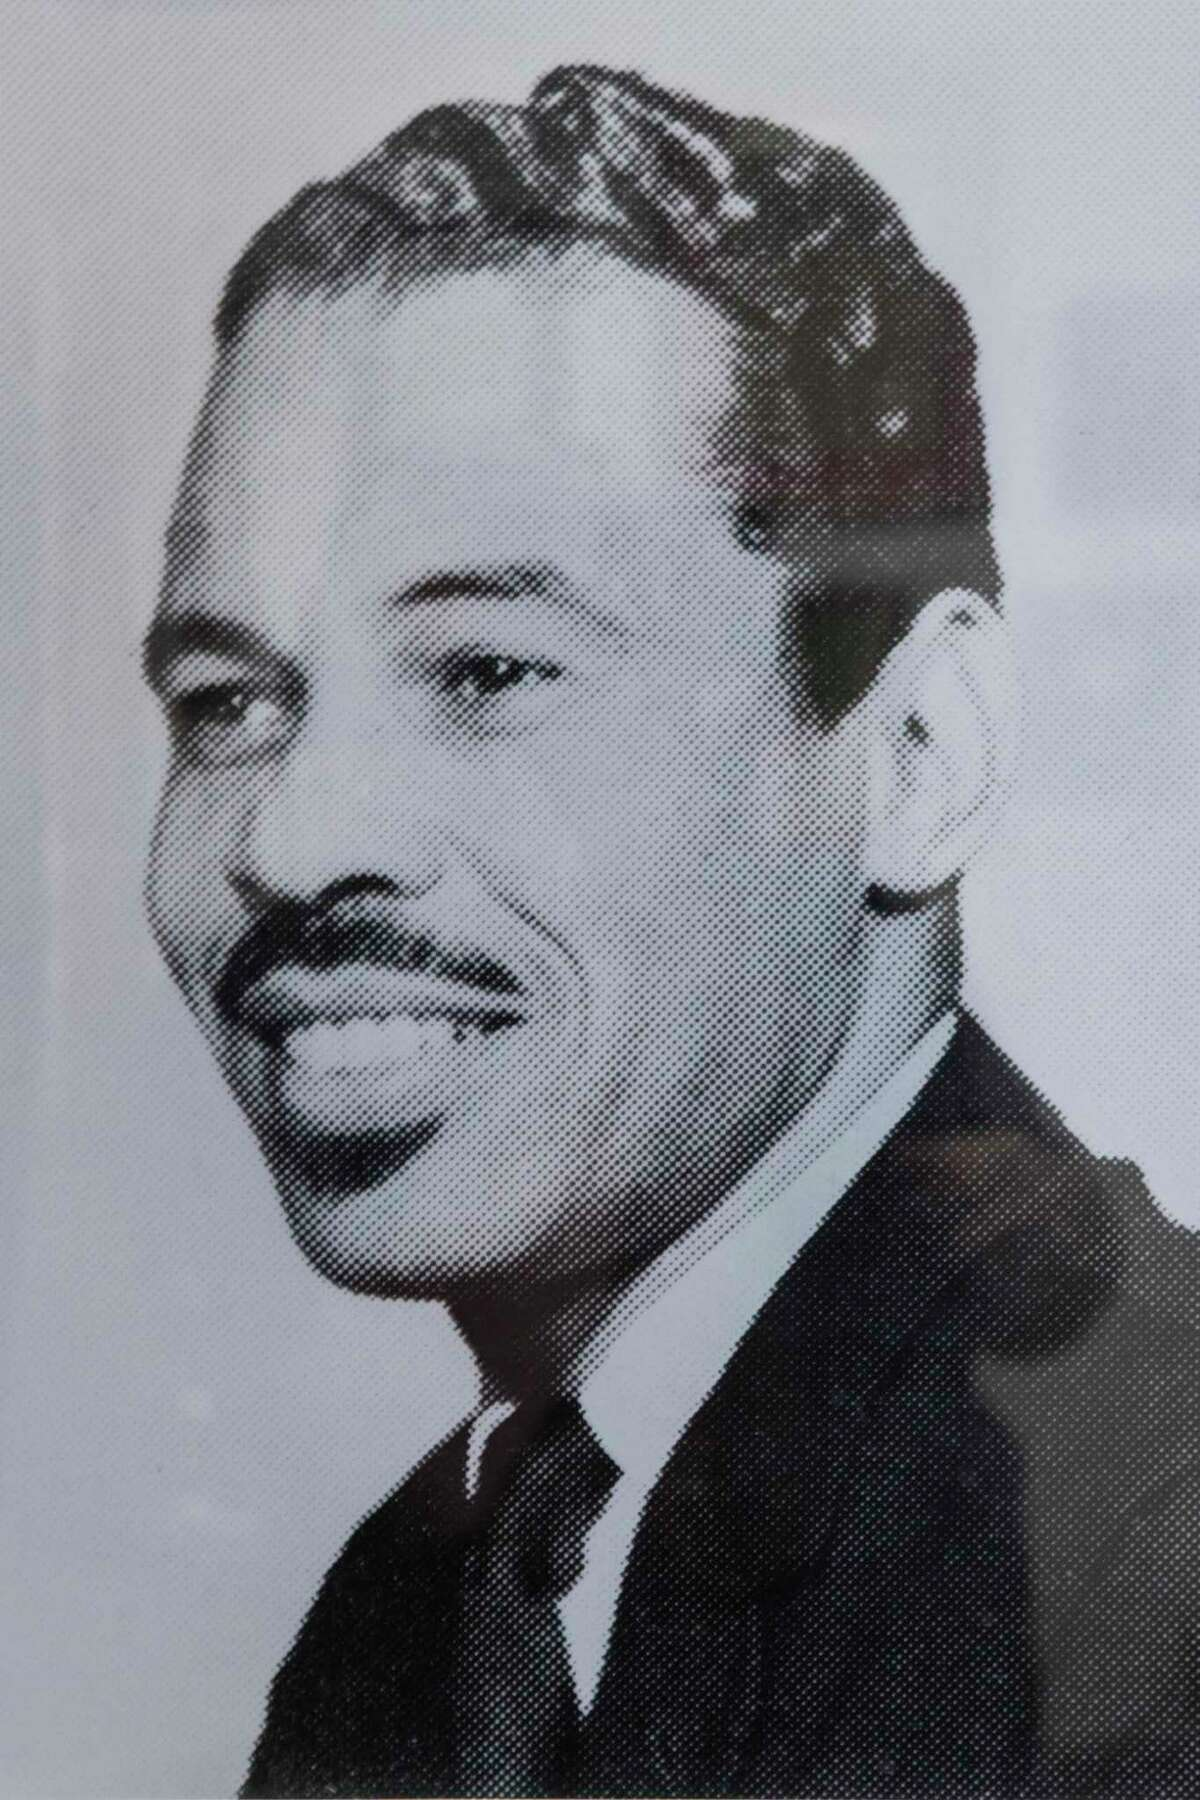 Dr. Thomas Freeman, founding dean of the Texas Southern University Honors College and longtime debate team director, is shown in a photo from the 1970s.